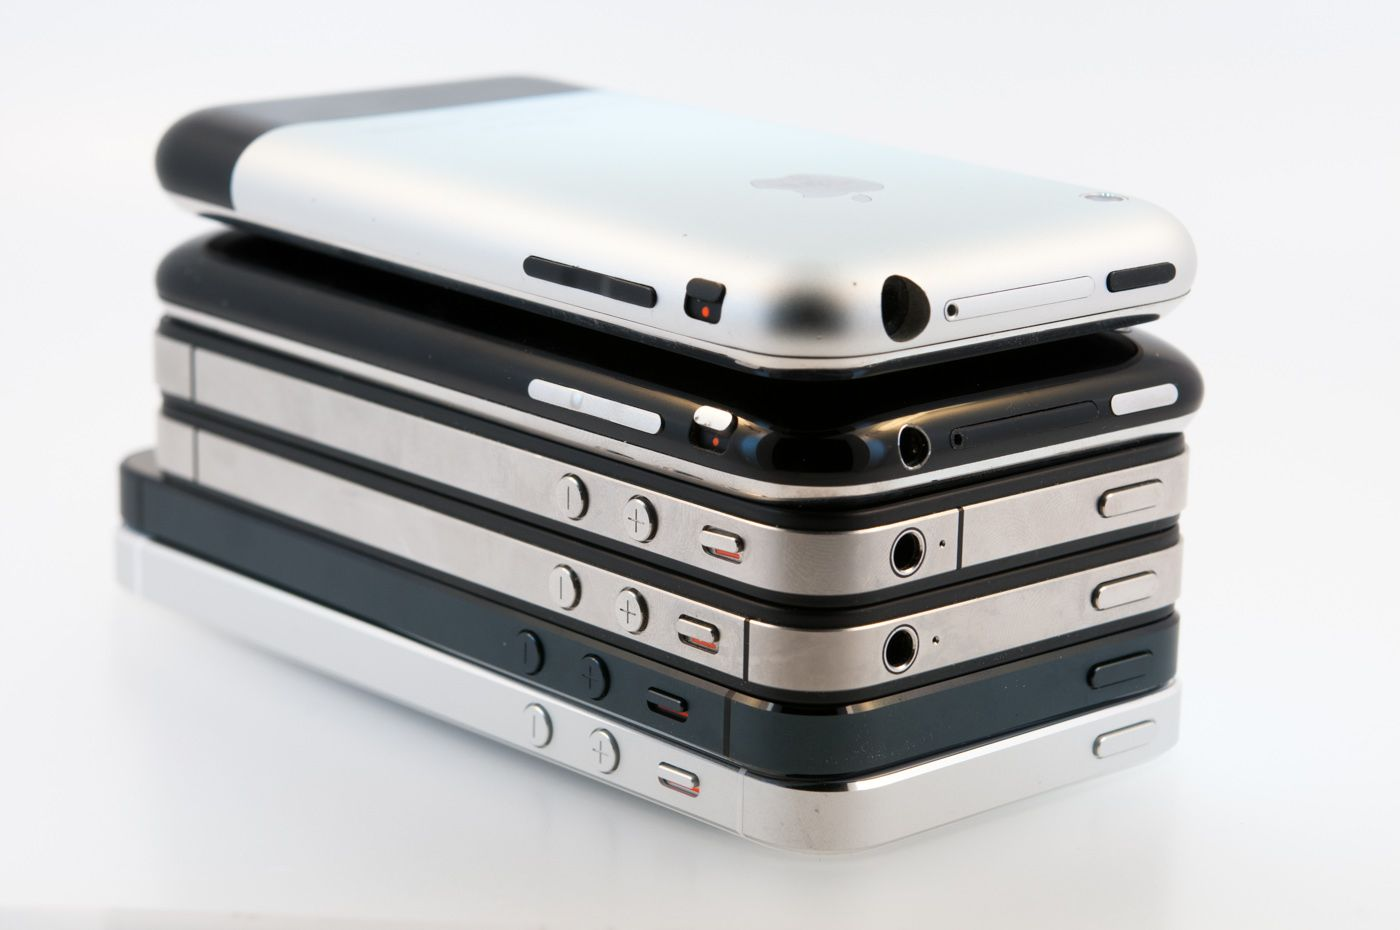 Six Generations of iPhones - [ No comment, just an interesting perspective. -PSC]